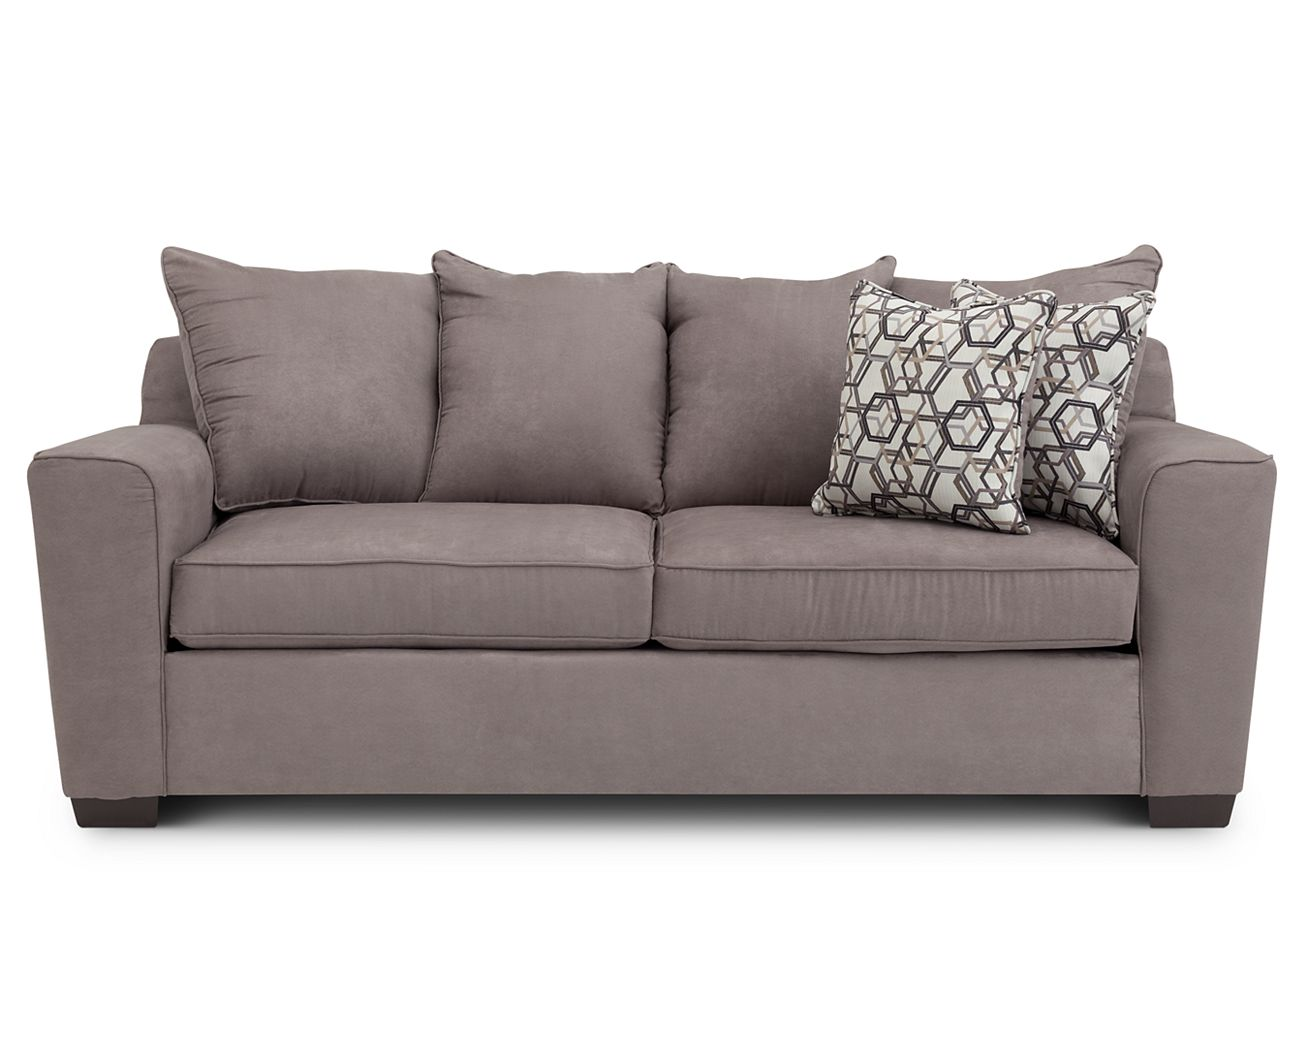 Chairs for living room furniture - Ventura Sofa